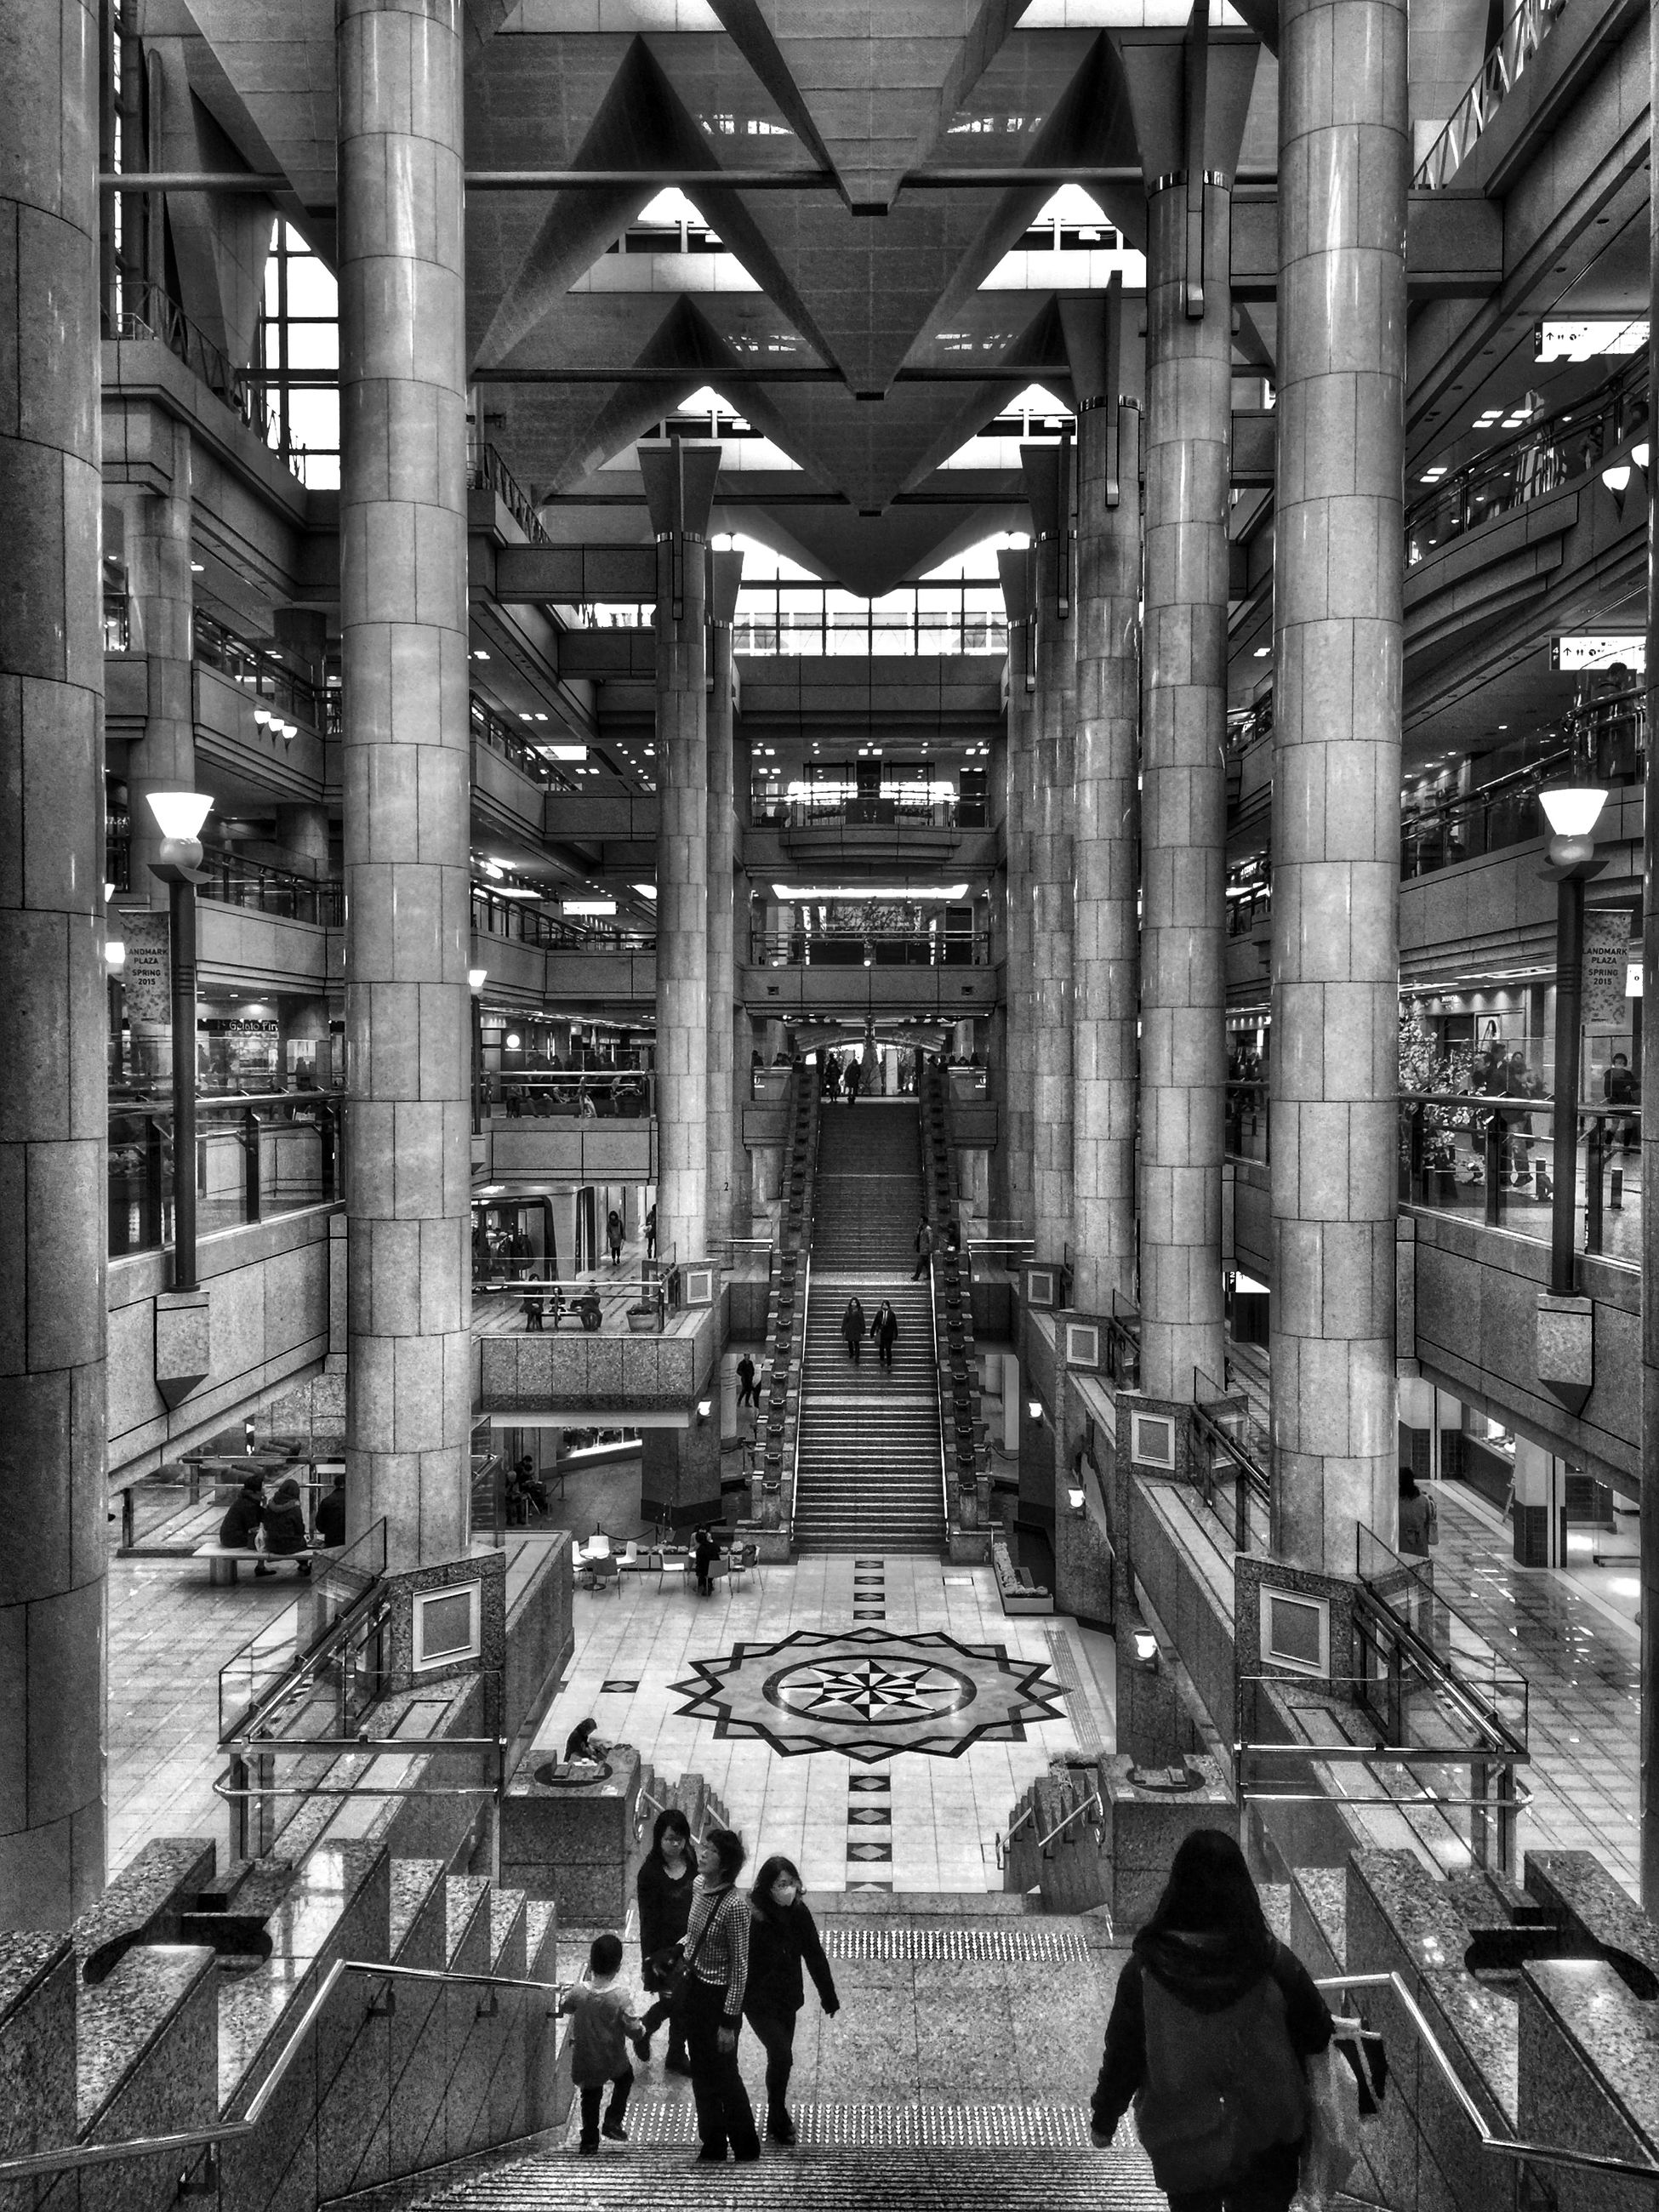 indoors, men, architecture, person, lifestyles, built structure, large group of people, leisure activity, walking, ceiling, architectural column, building, city life, standing, building exterior, group of people, shopping mall, crowd, medium group of people